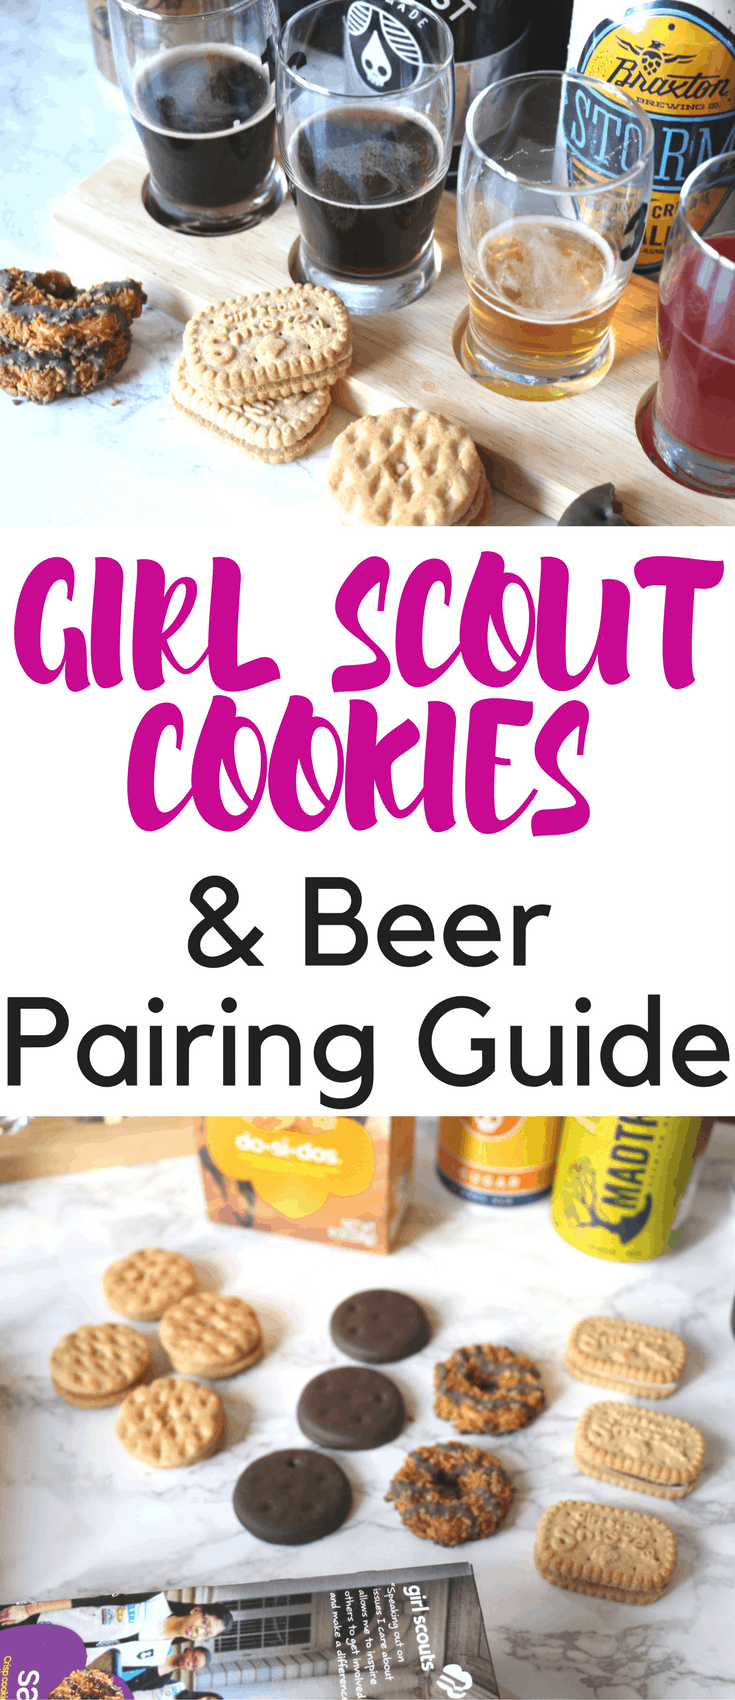 Girl Scout Cookies and beer pairings are here. I'll show you how to pair Girl Scout Cookies with craft beer from Cincinnati breweries, plus other options.